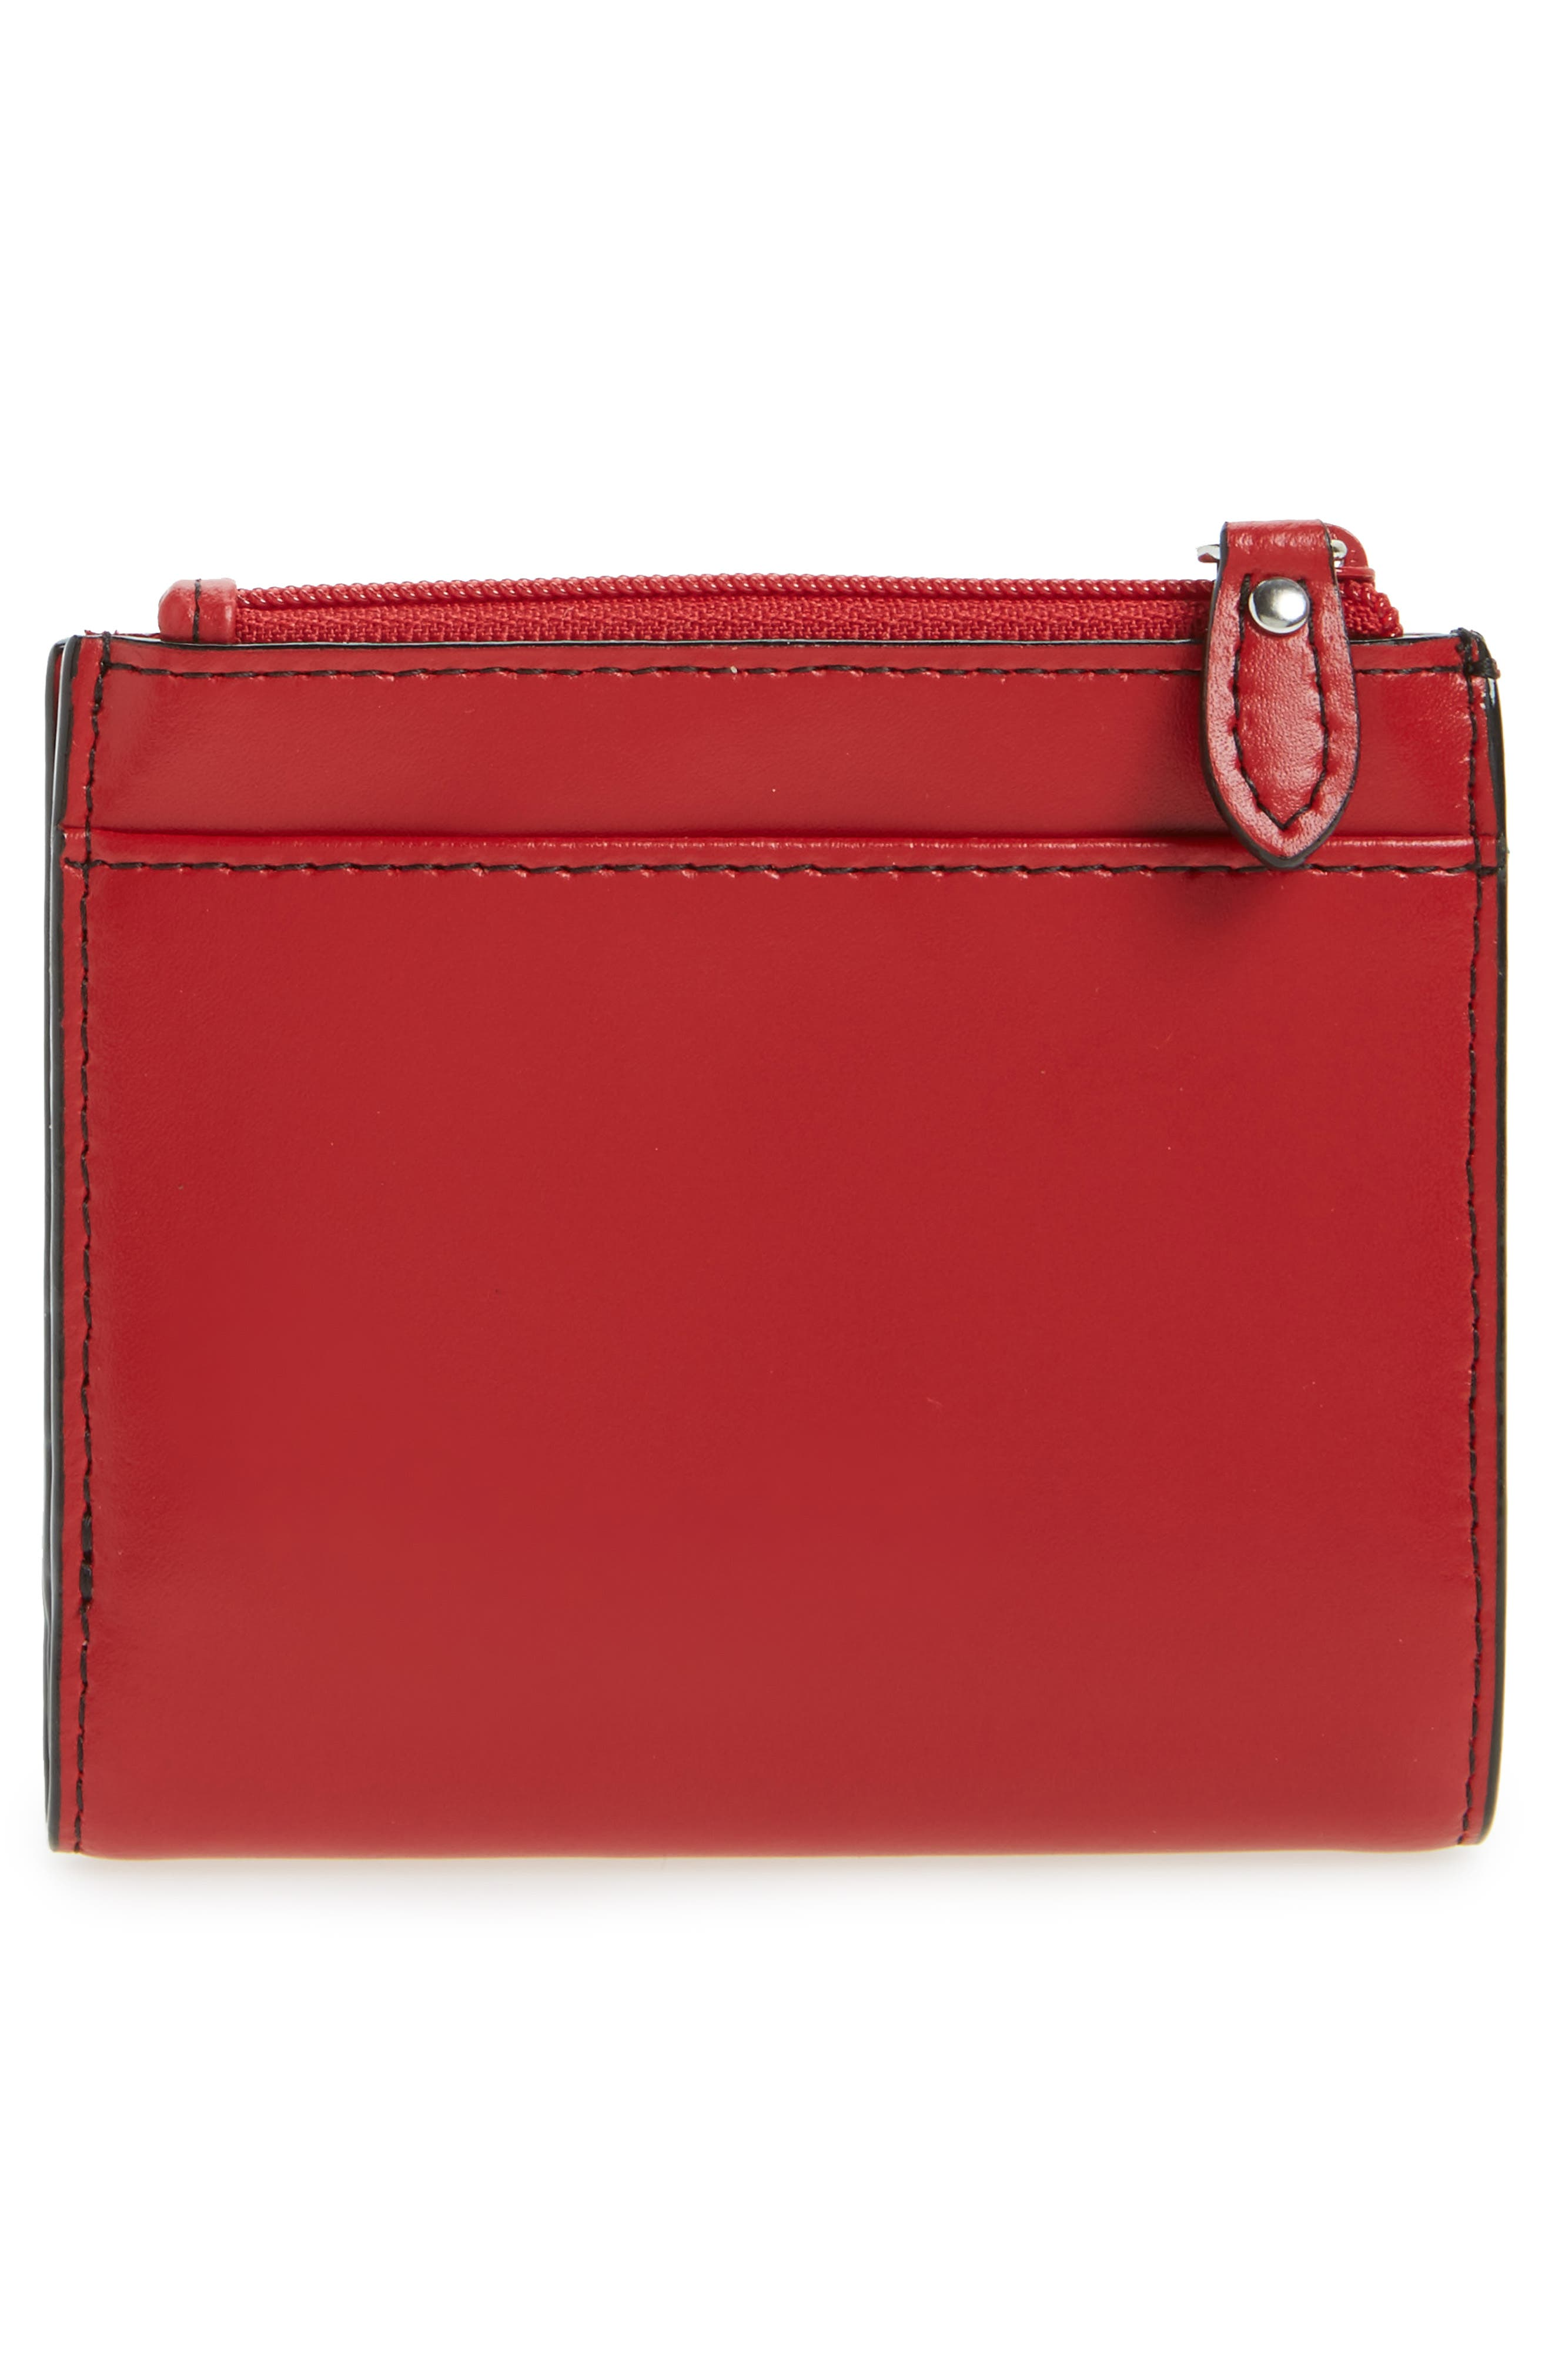 Audrey Under Lock & Key Aldis Leather Wallet,                             Alternate thumbnail 12, color,